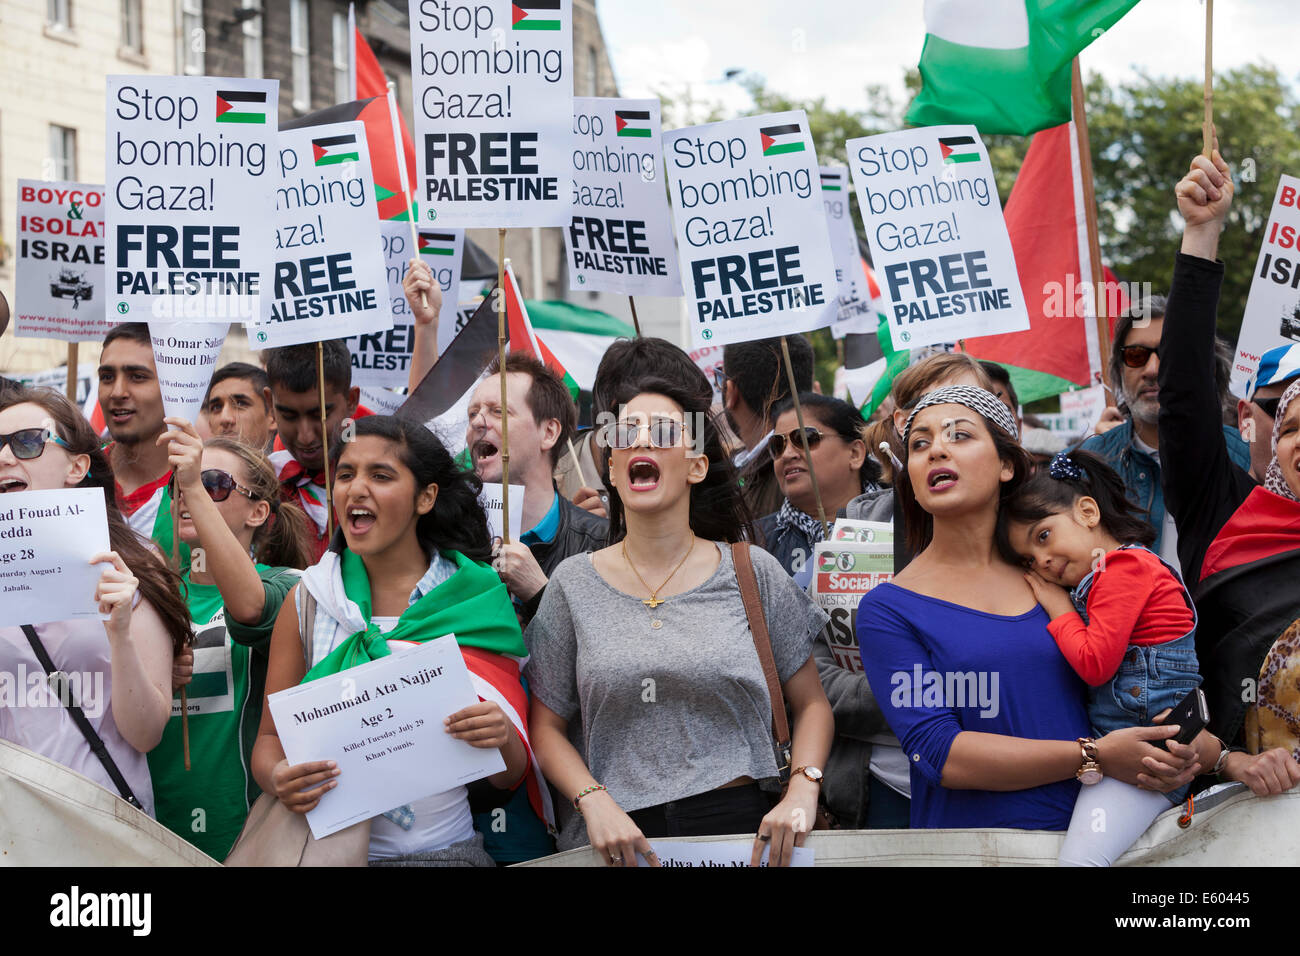 Pro Palestinian demonstrators march through the city of Edinburgh, Scotland, UK. 9th August 2014 - Stock Image